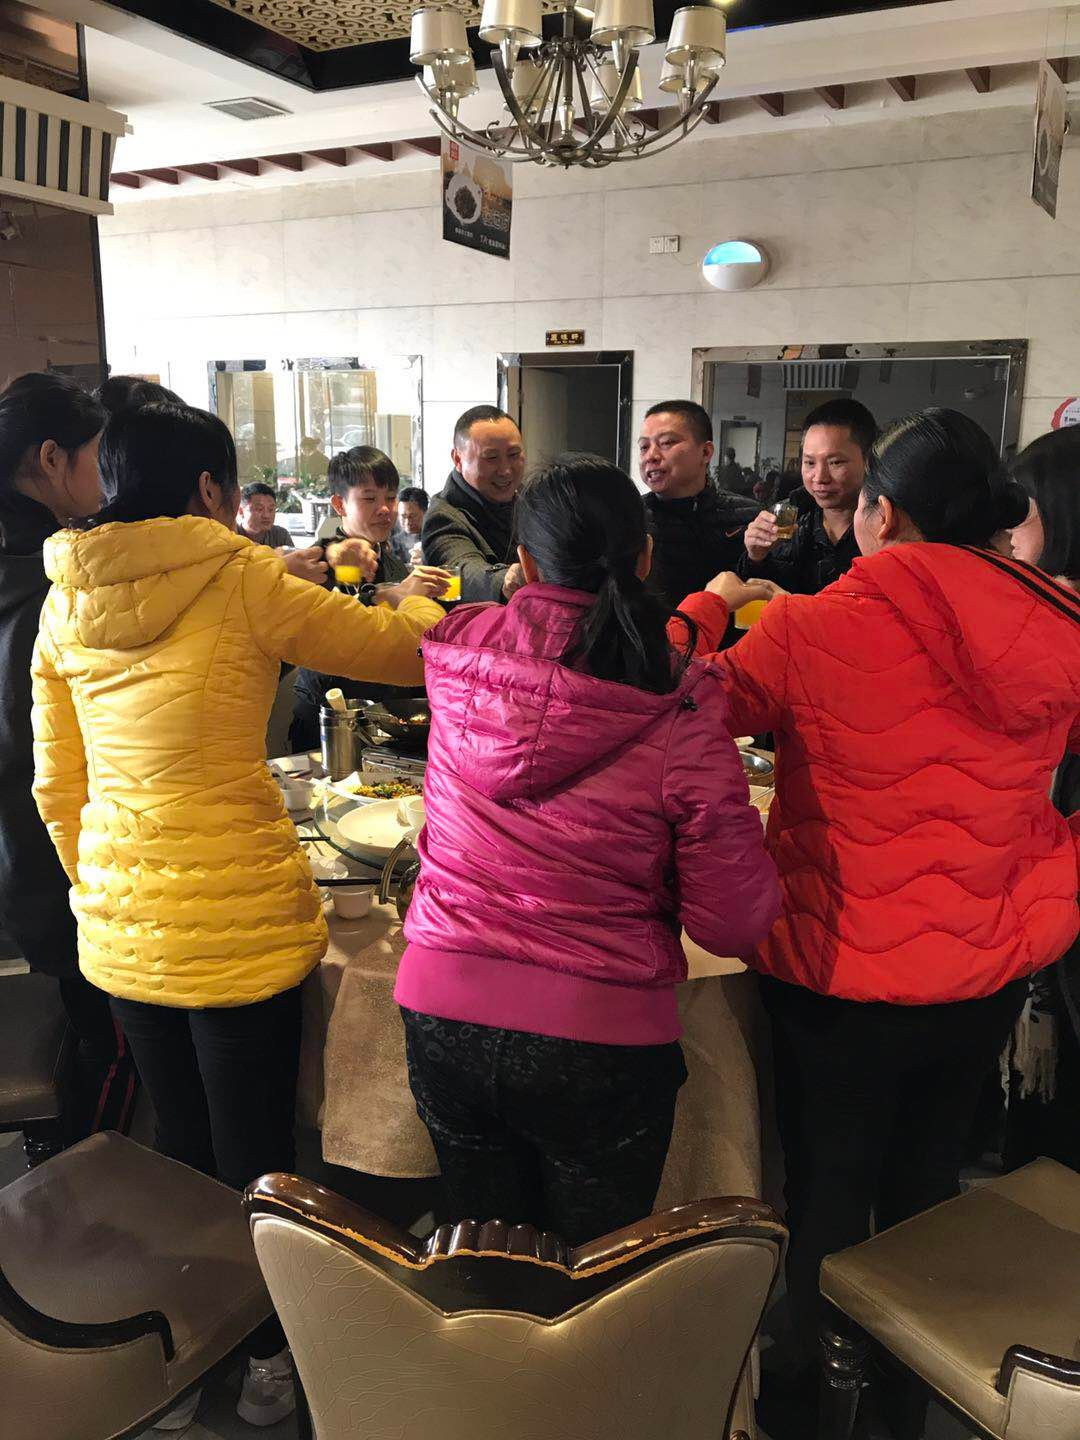 BELLA-2018 Chinese New Year Annual Dinner News About Satchel Handbags-1